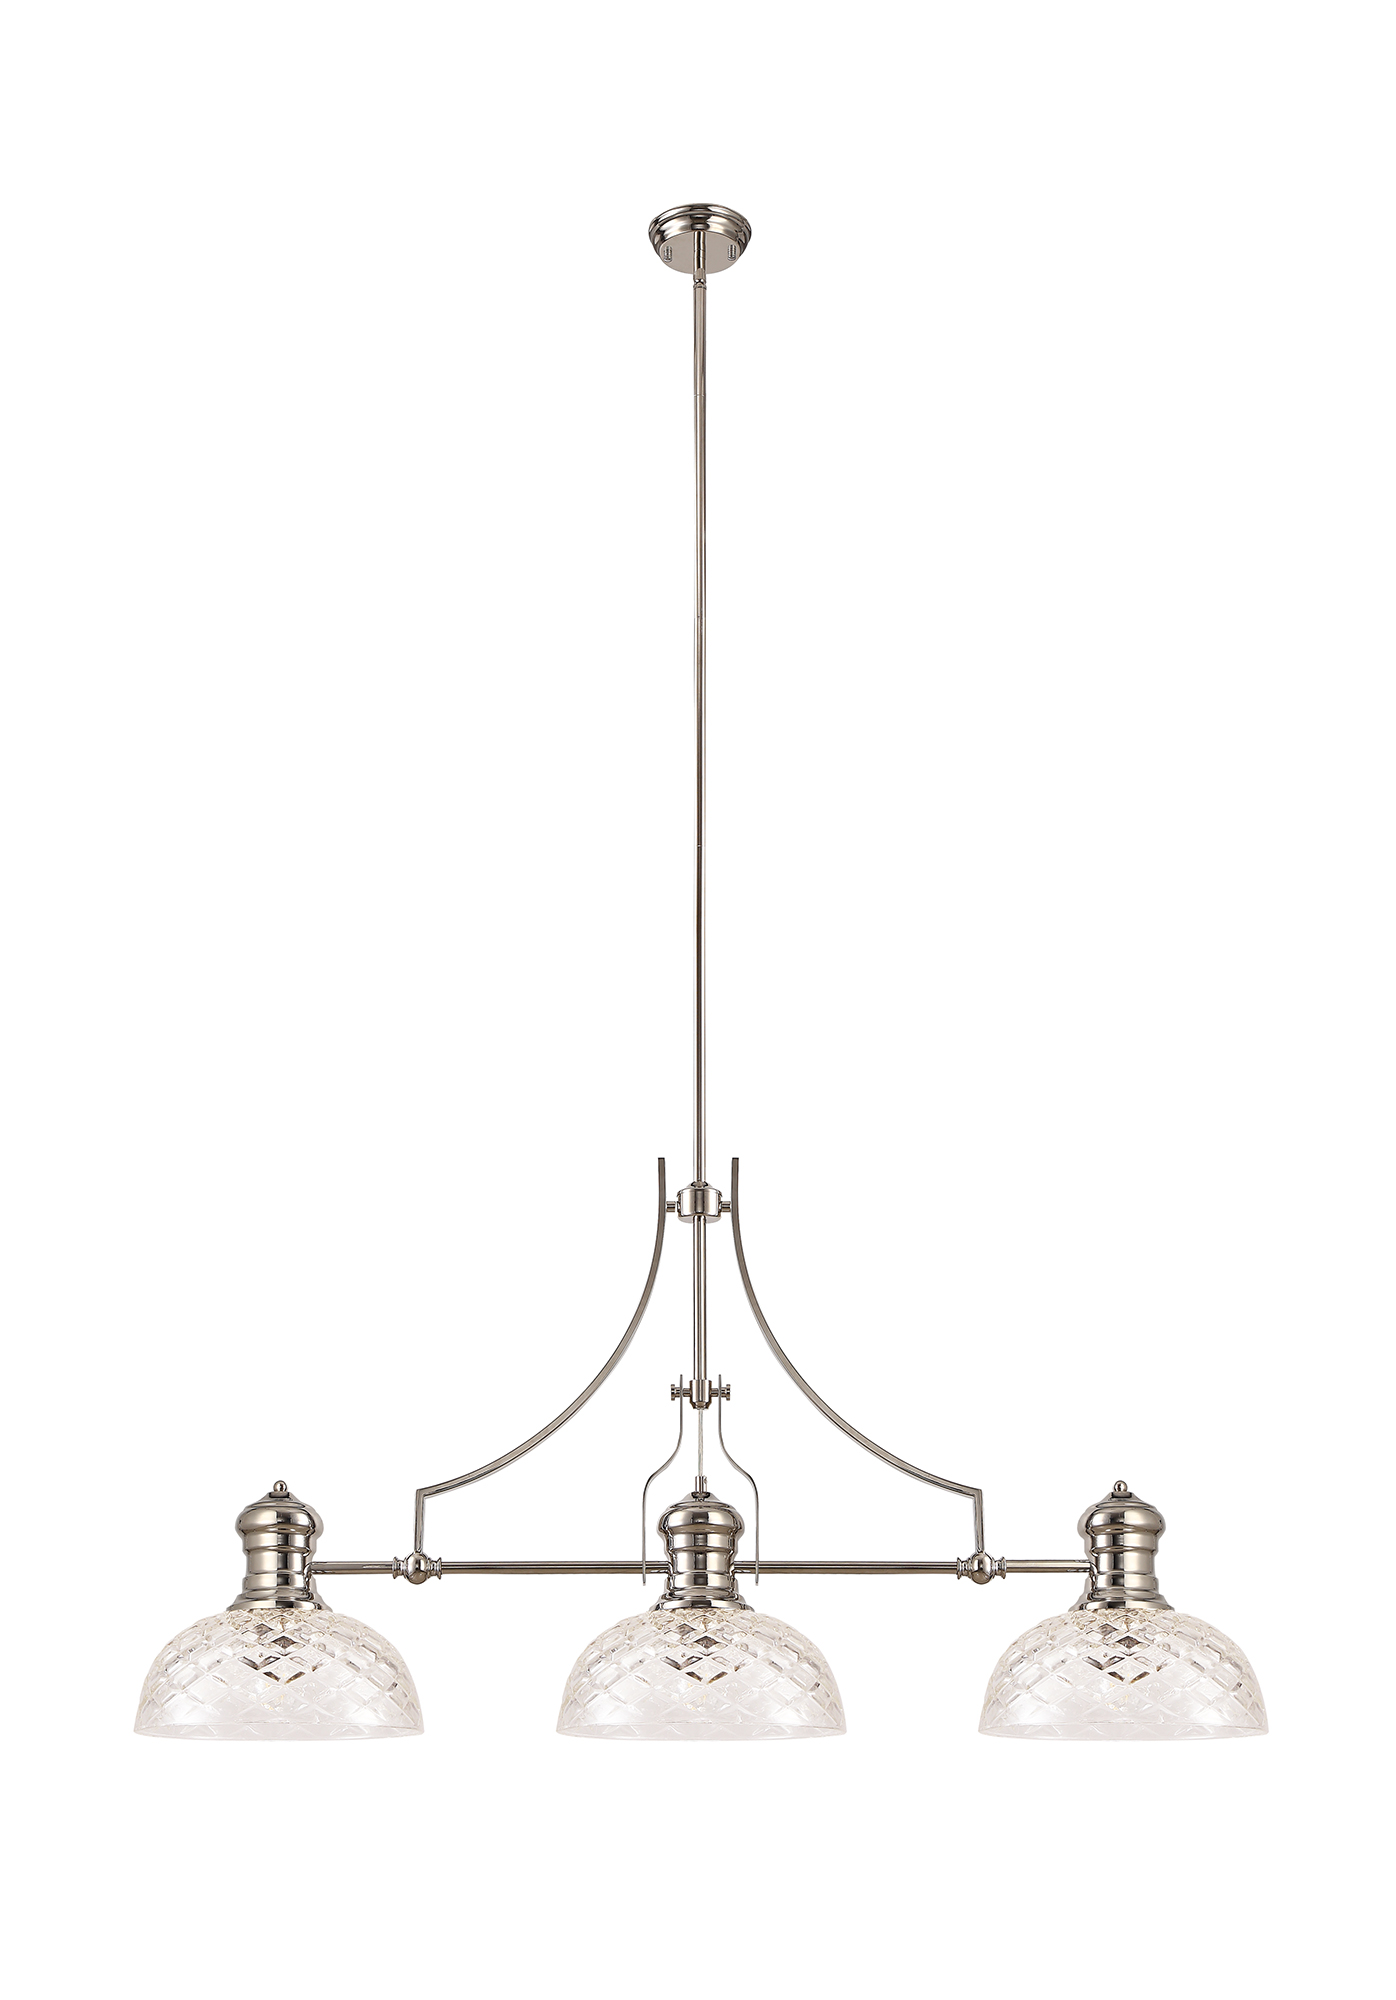 Linear Pendant With 30cm Flat Round Patterned Shade, 3 x E27